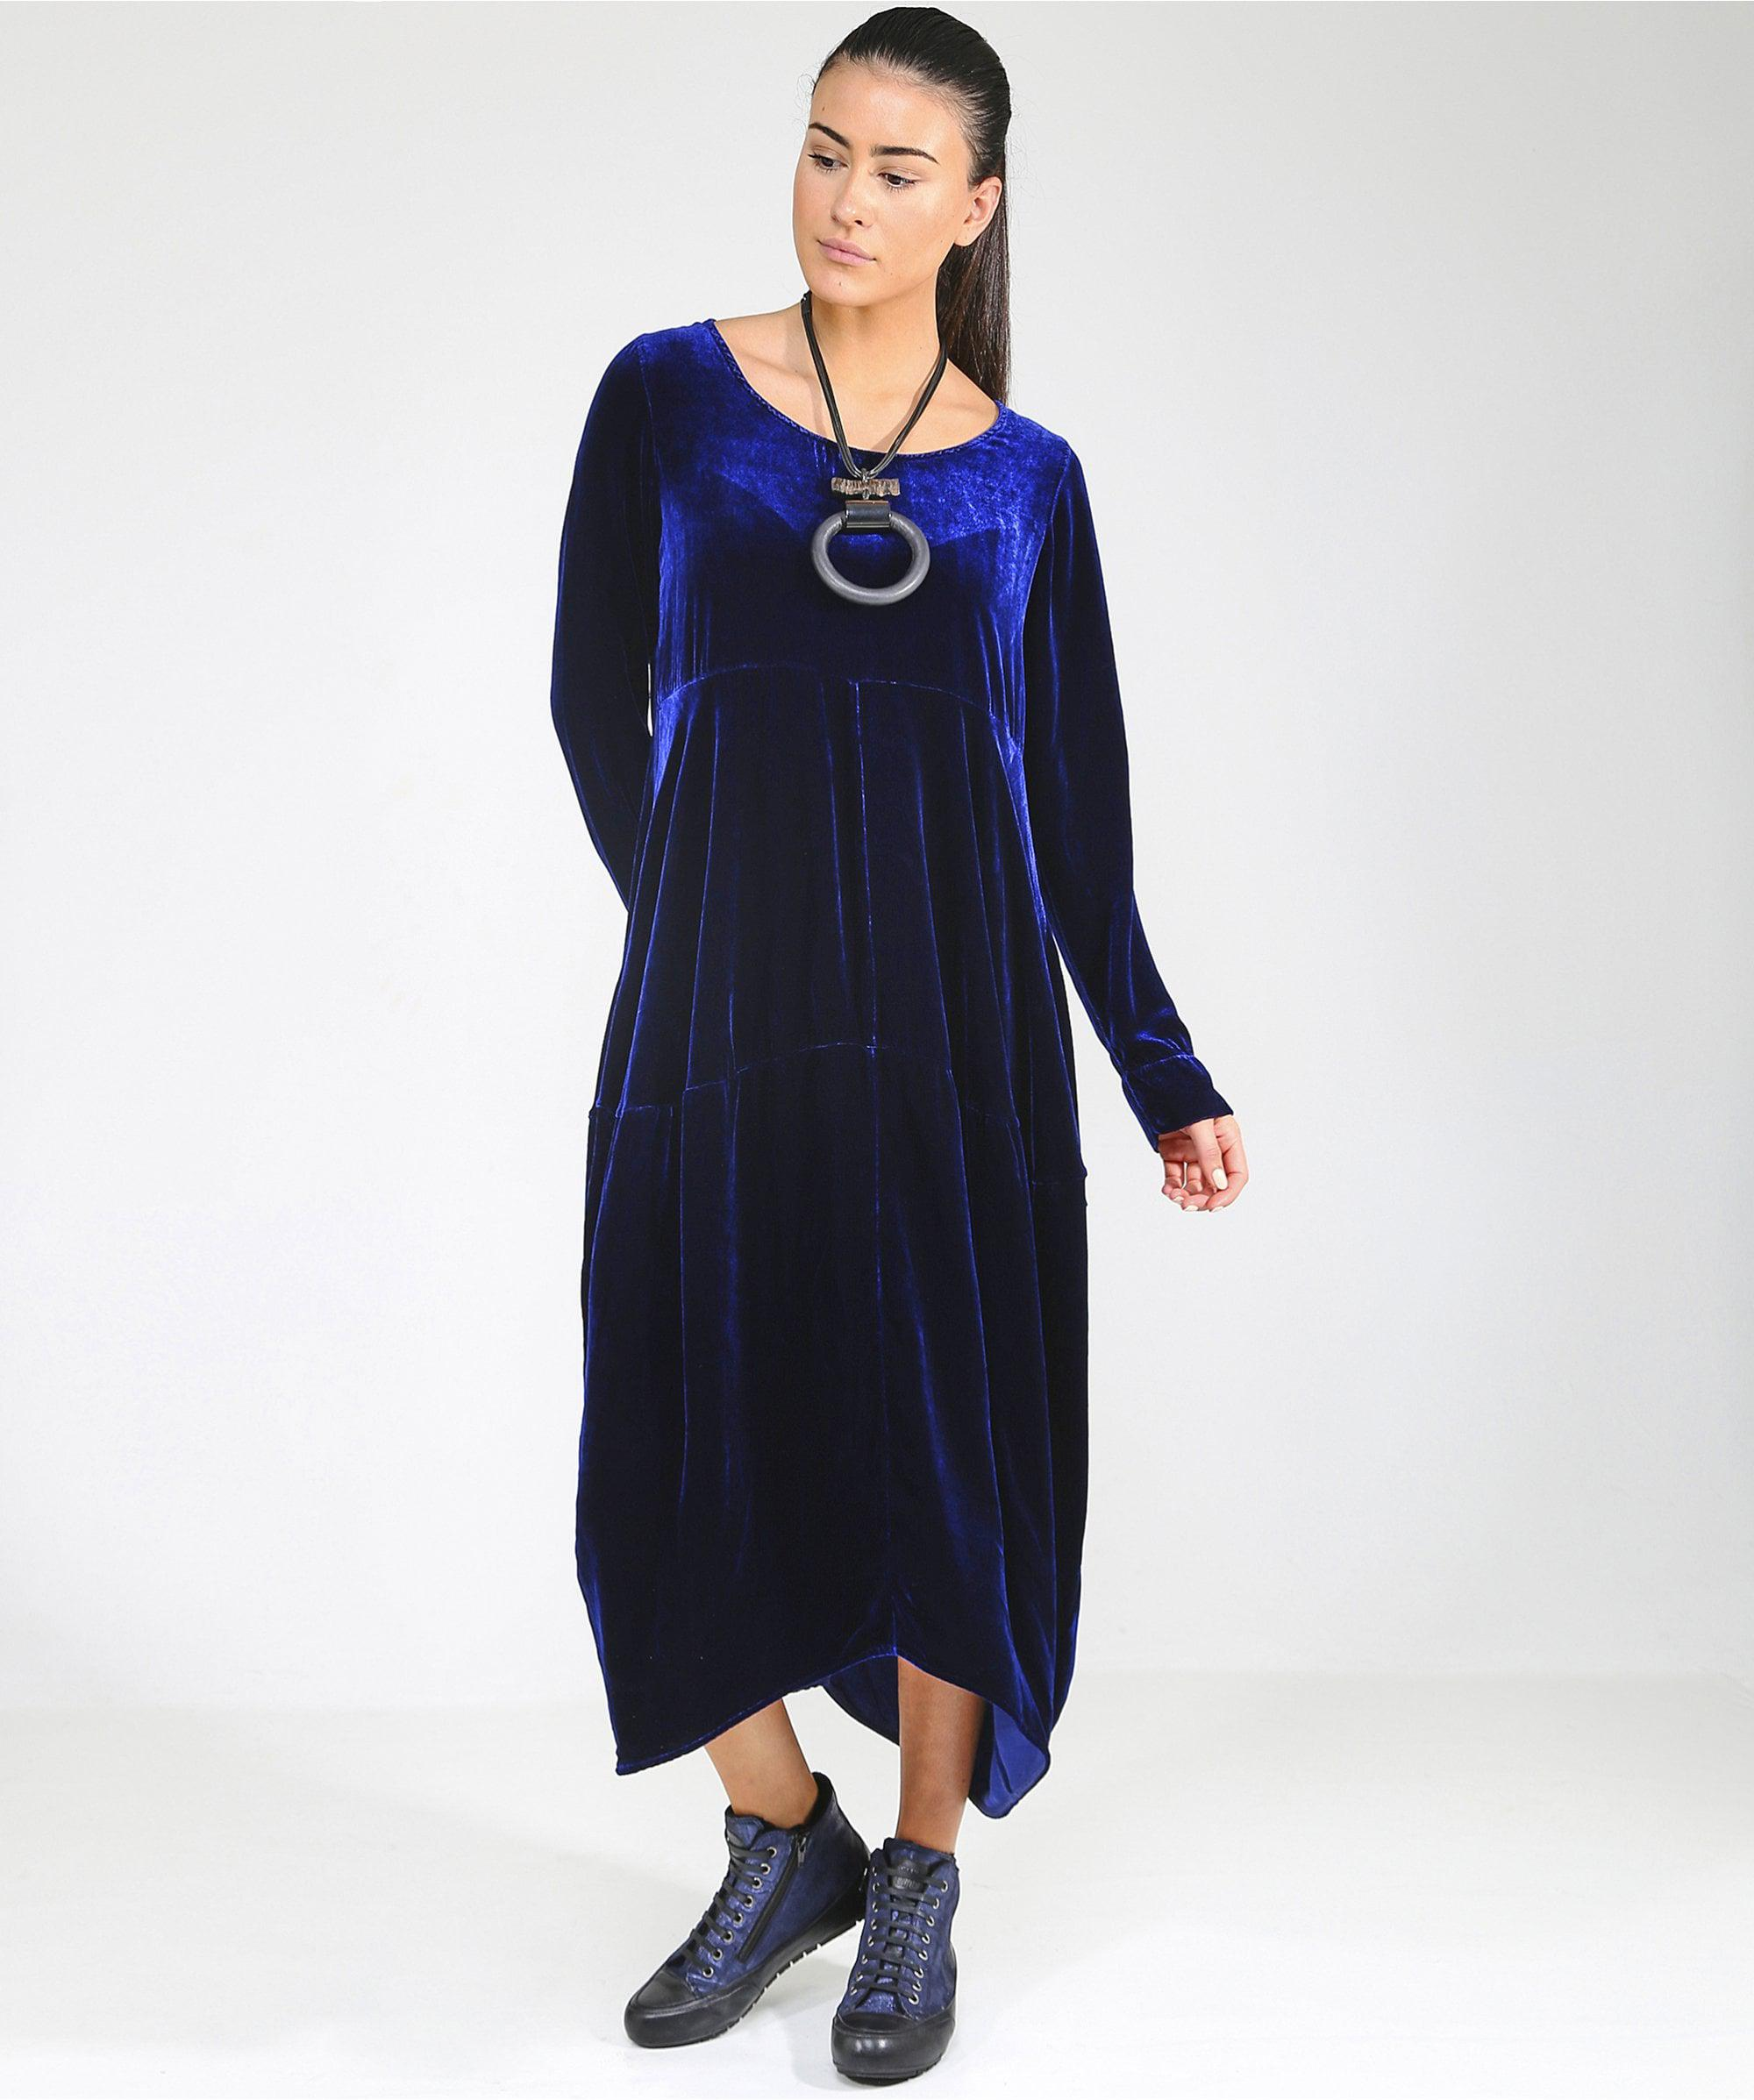 cd19379f659 Lyst - Grizas Panelled Layer Dress in Blue